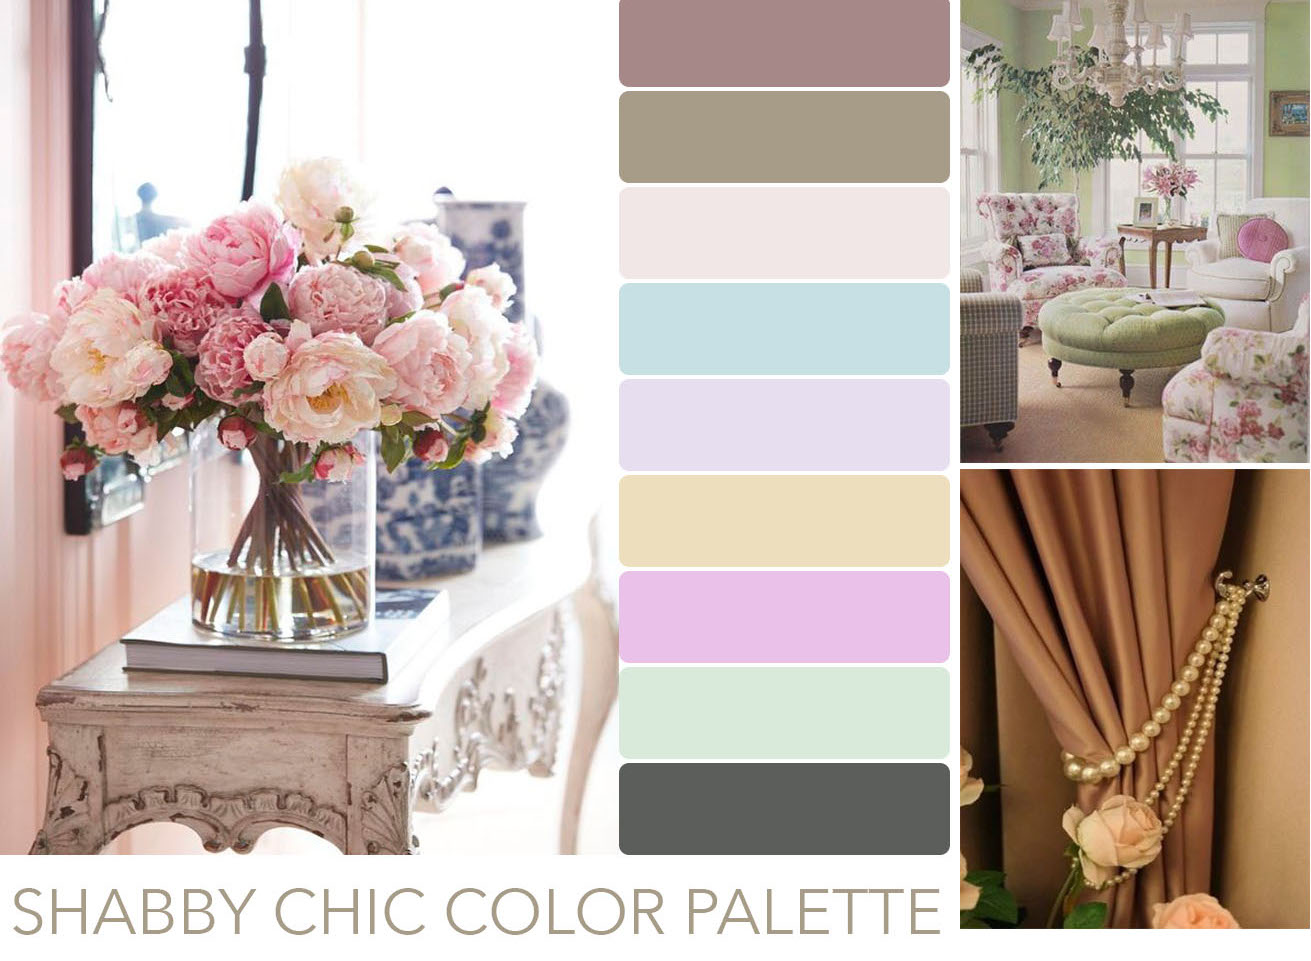 Shabby Chic Colors For Furniture : Know the style shabby chic u interior much with sabia